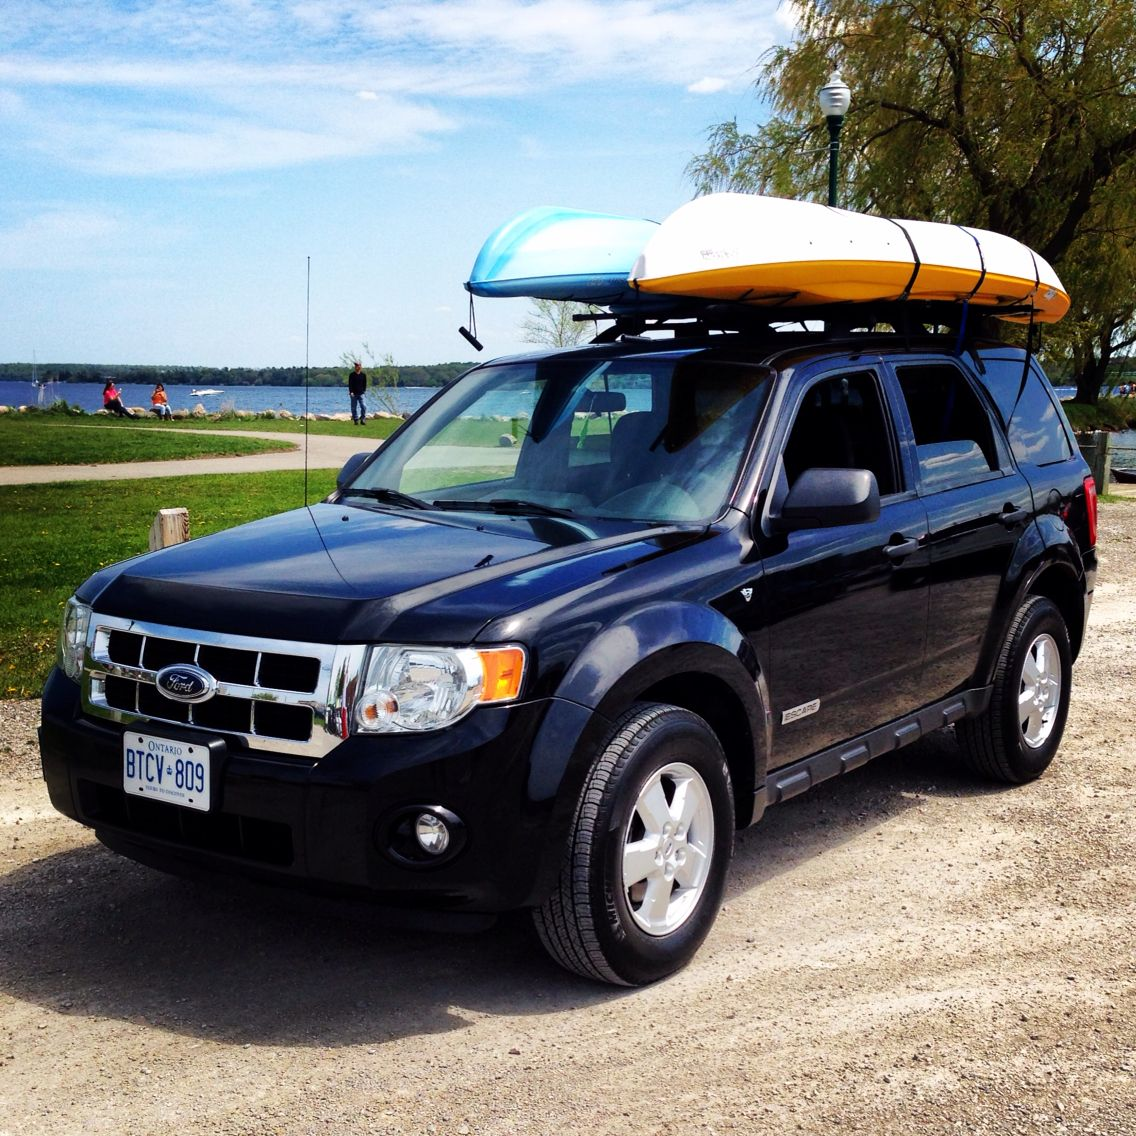 My Ford Escape Is Great For Summer Recreation And The Aftermarket Sportrack Roof Racks Allow Me To Put 2 Kayaks Side By Ford Escape Kayak Roof Rack Car Camping